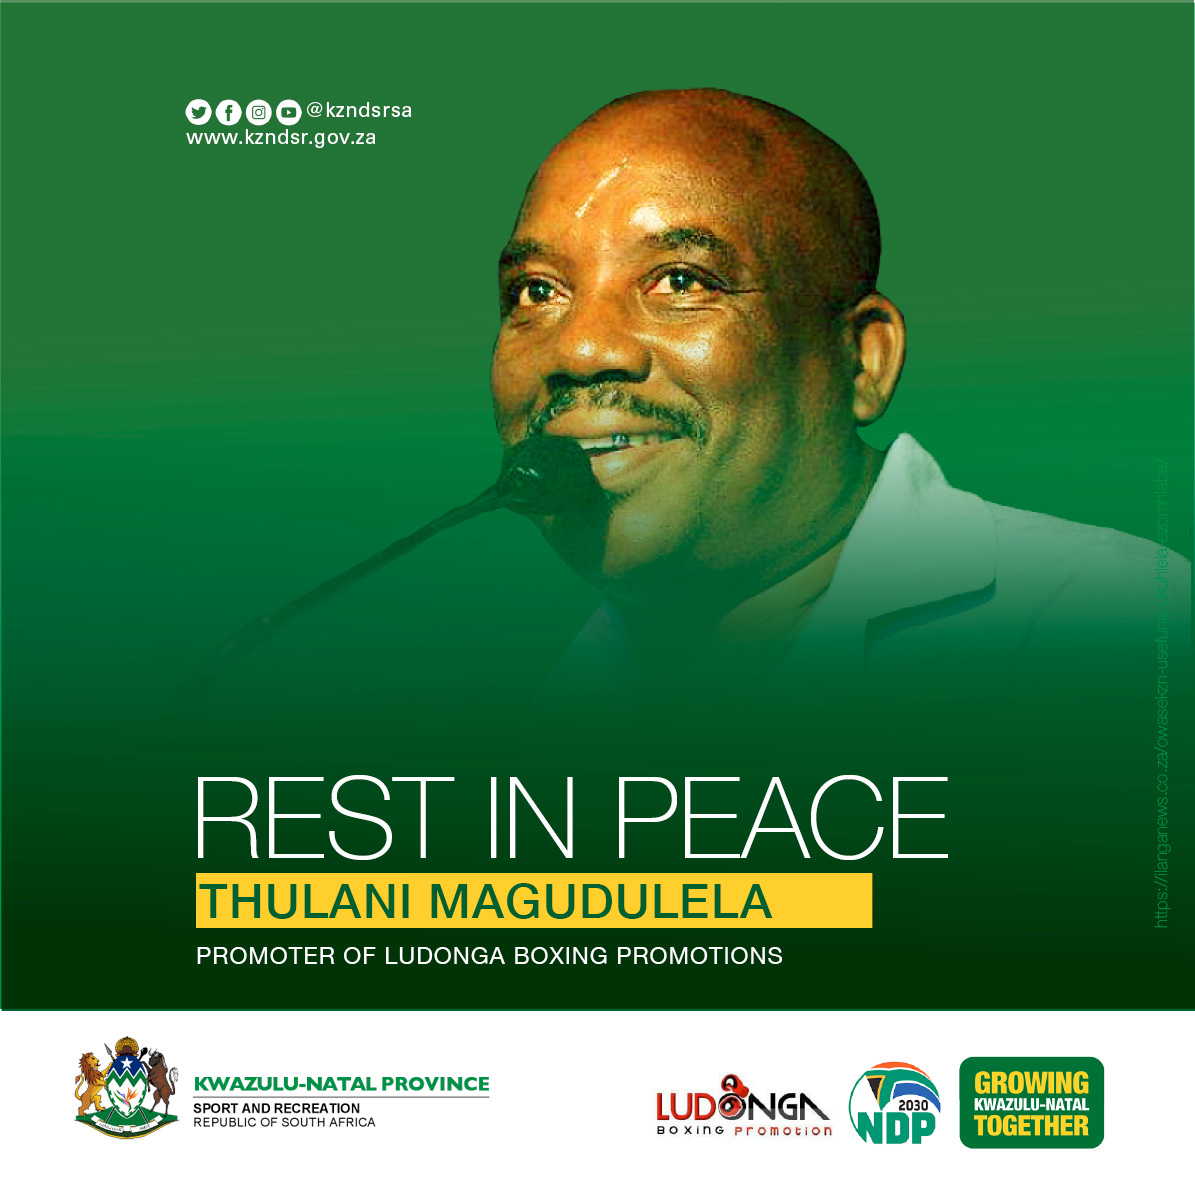 MEC Express Condolences On Passing Of Thulani Magudulela